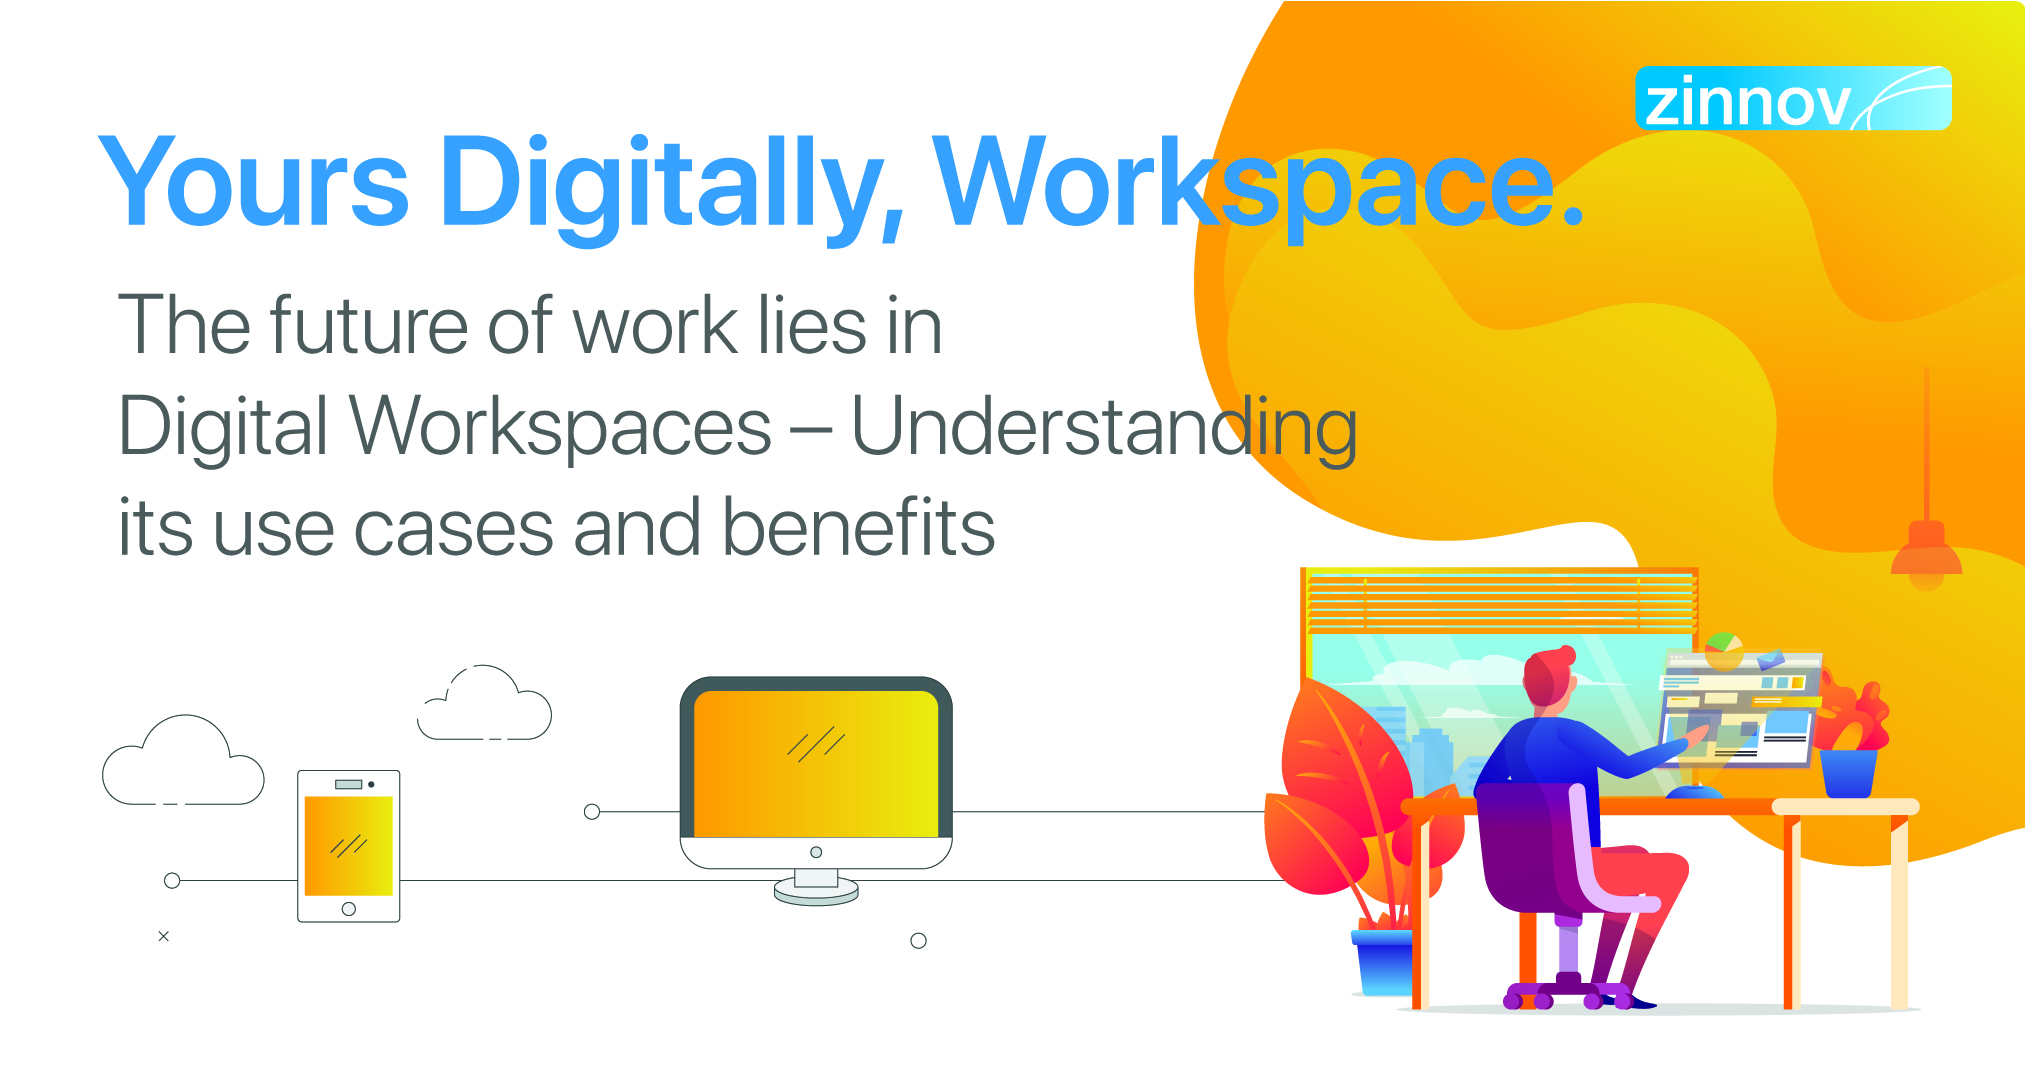 Digital Workplace Use Cases and Benefits